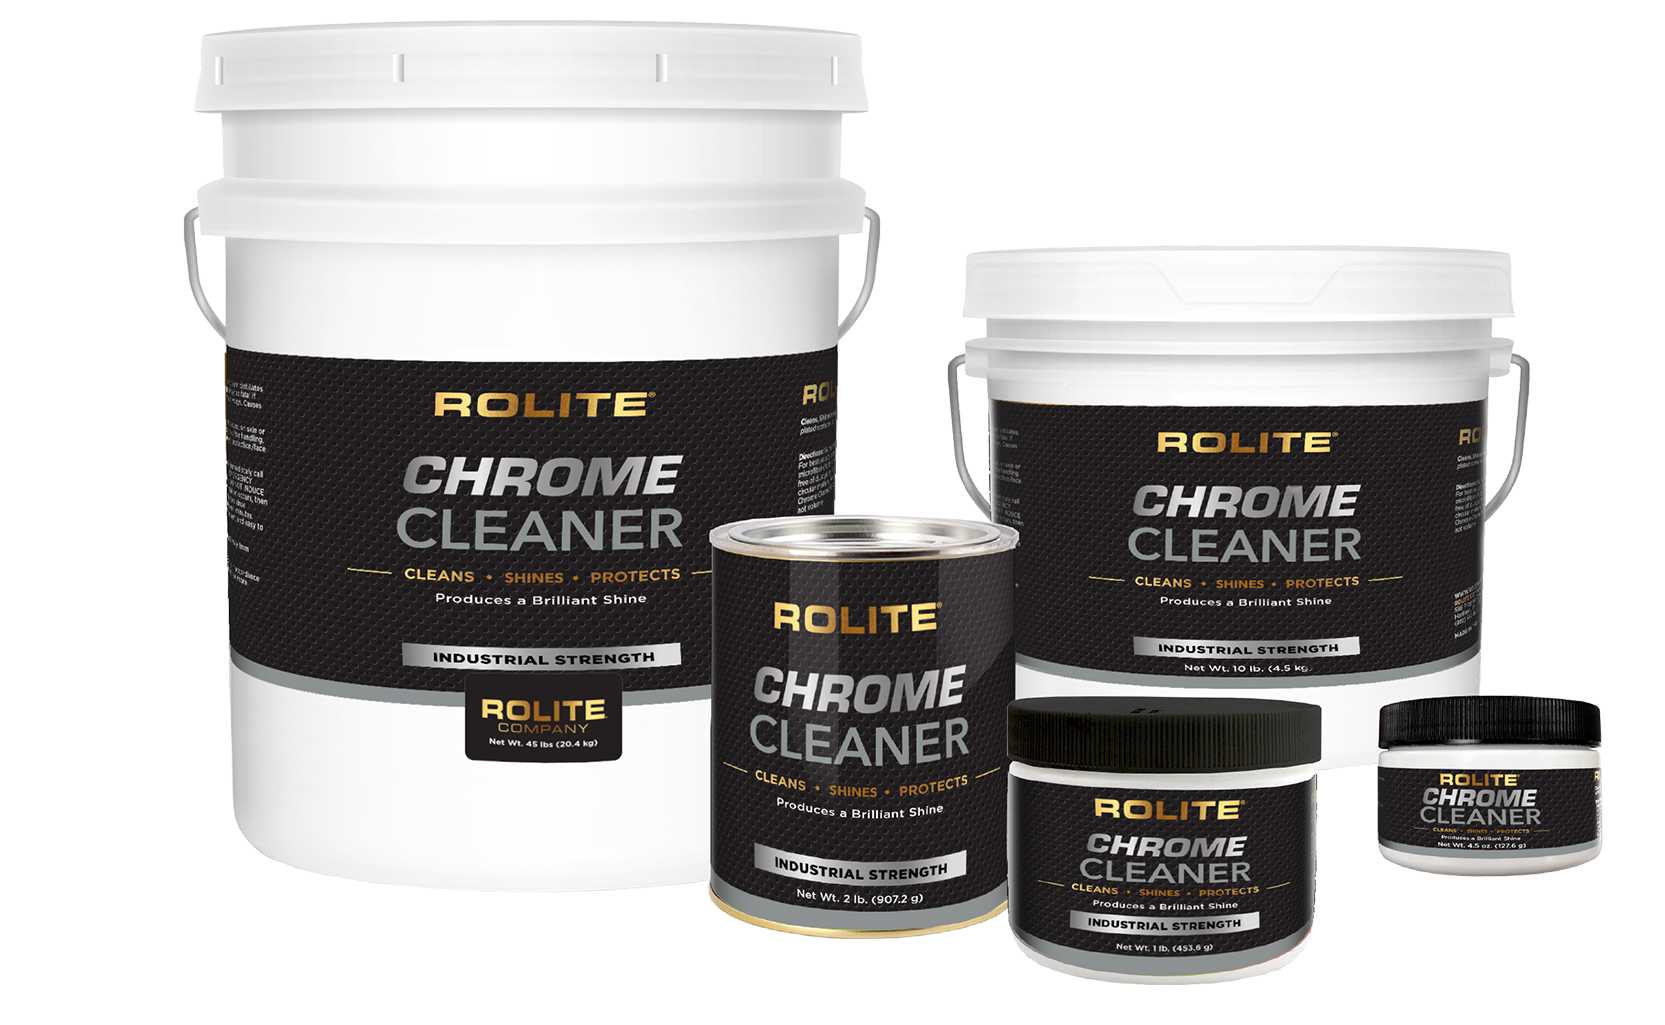 Rolite Chrome Cleaner